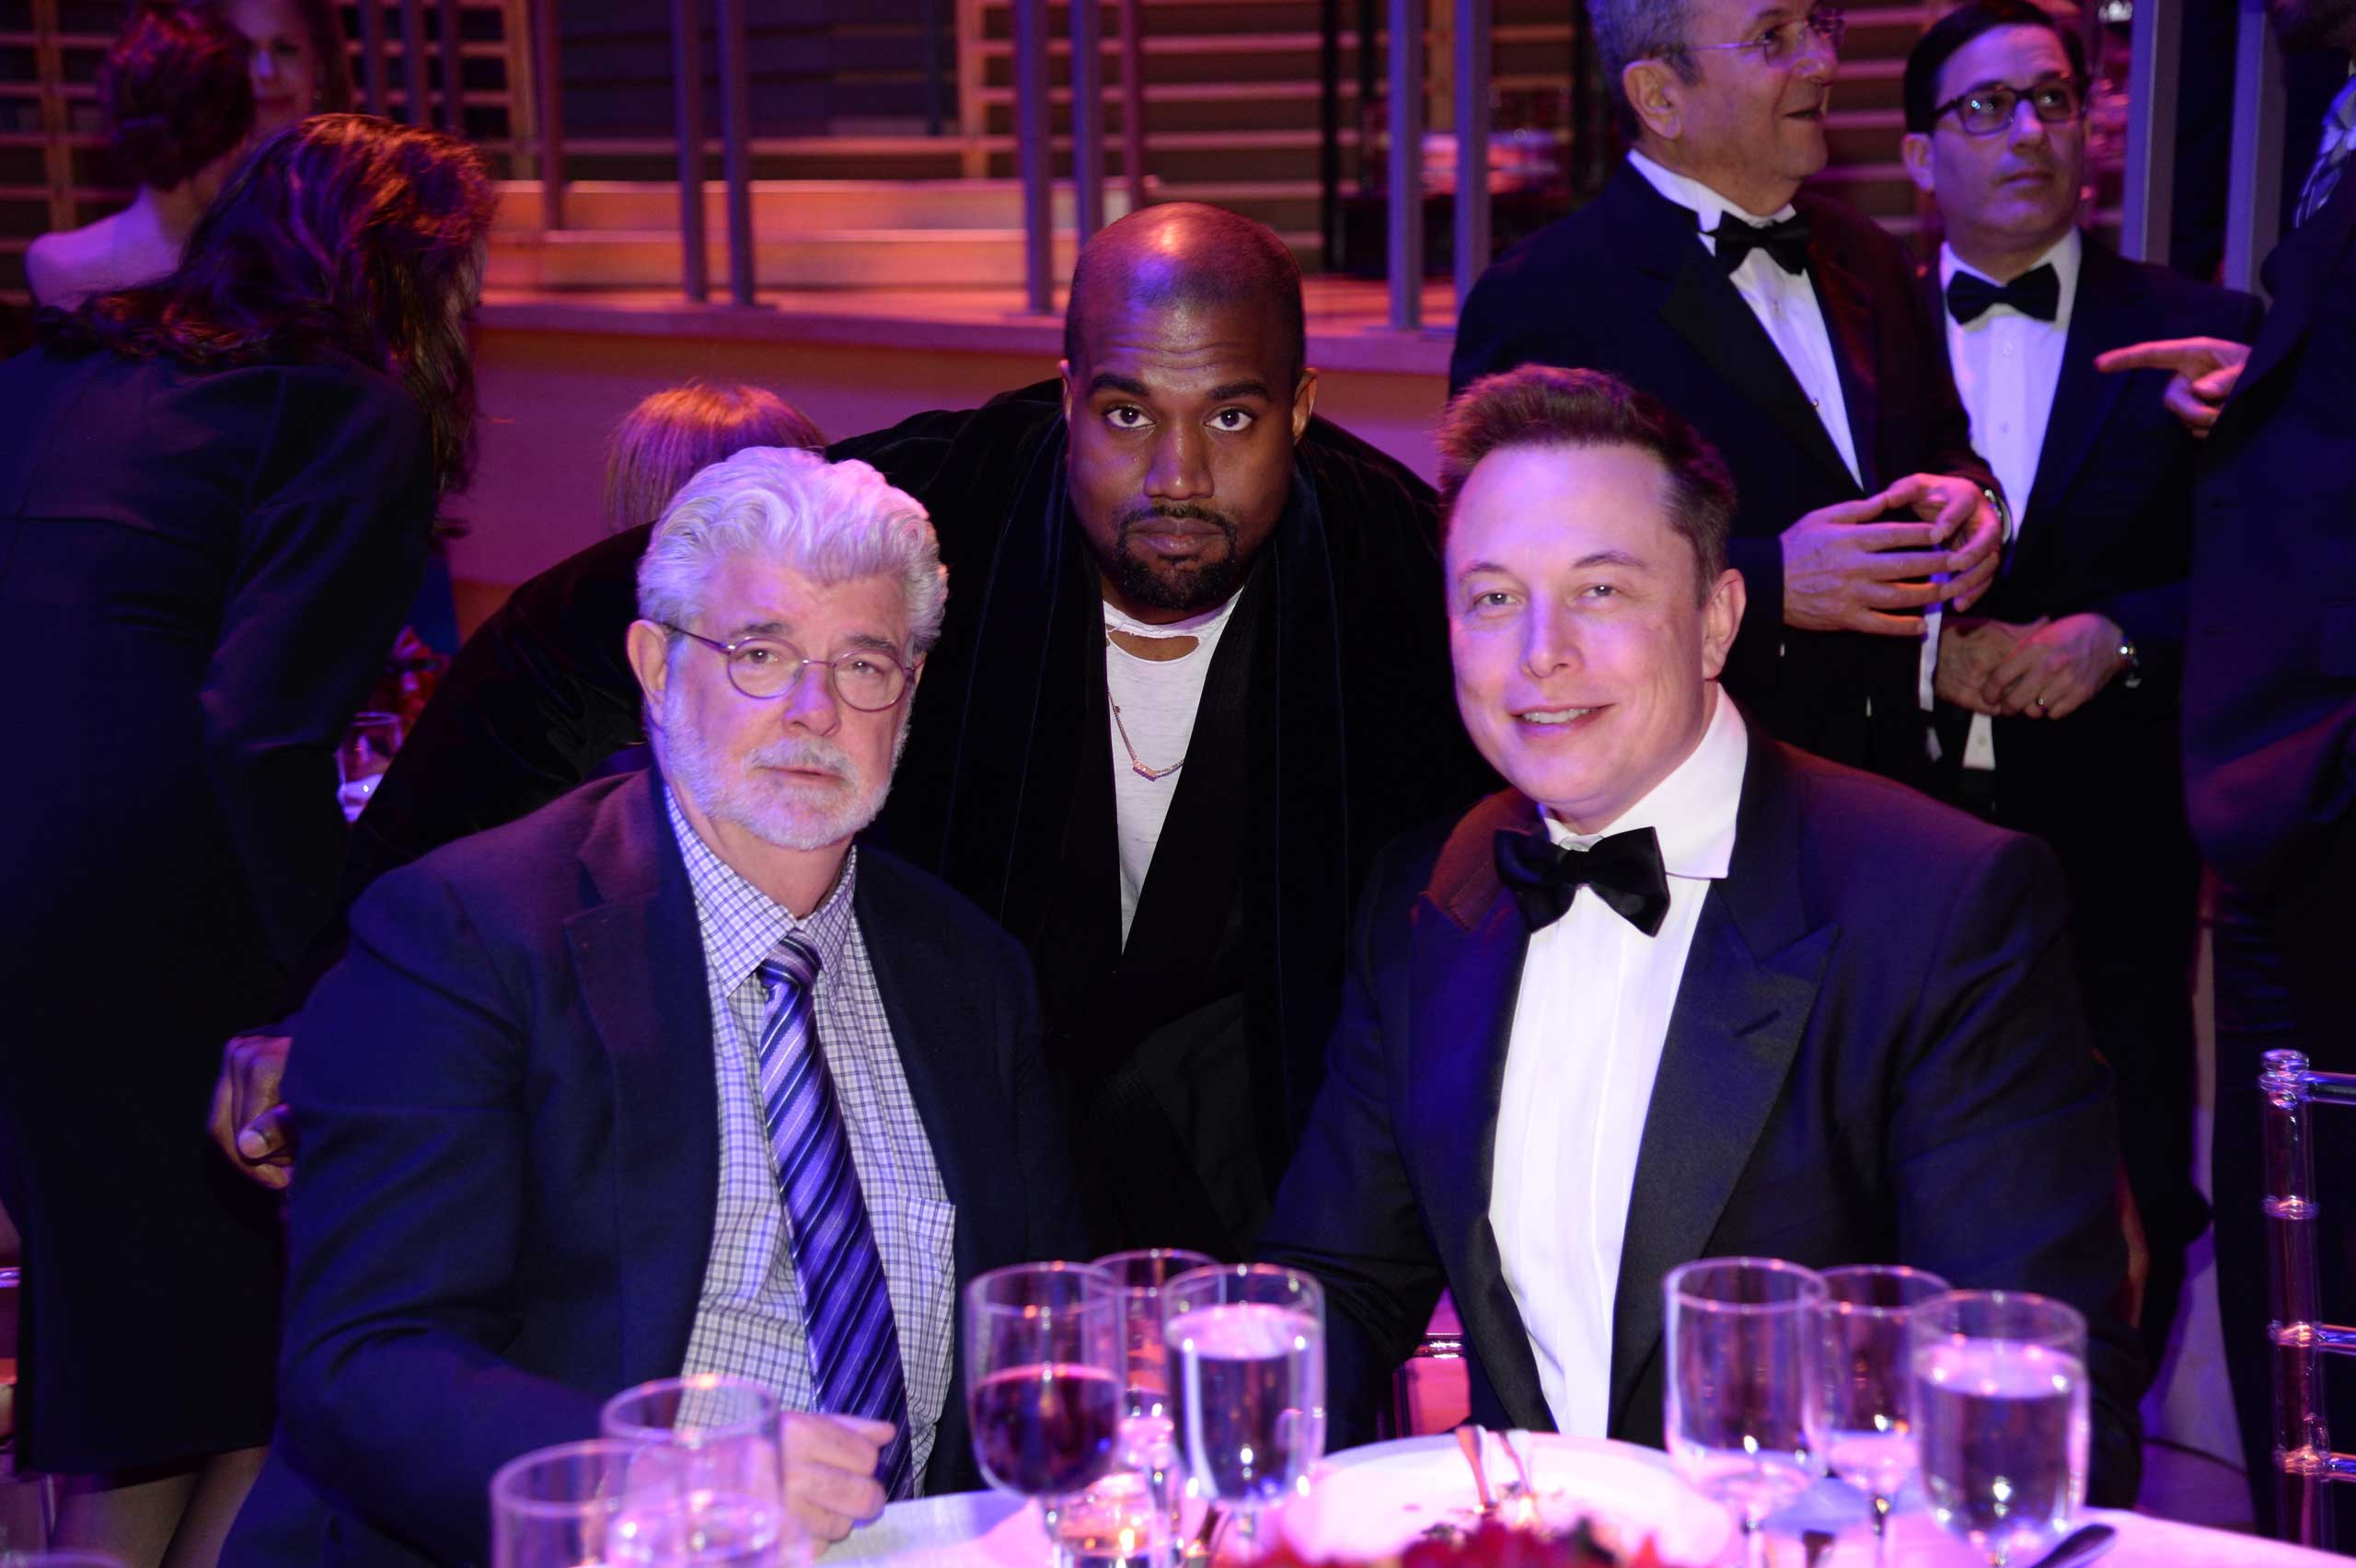 George Lucas, Kanye West, and Elon Musk attend the TIME 100 Gala at Jazz at Lincoln Center in New York City on April 21, 2015.